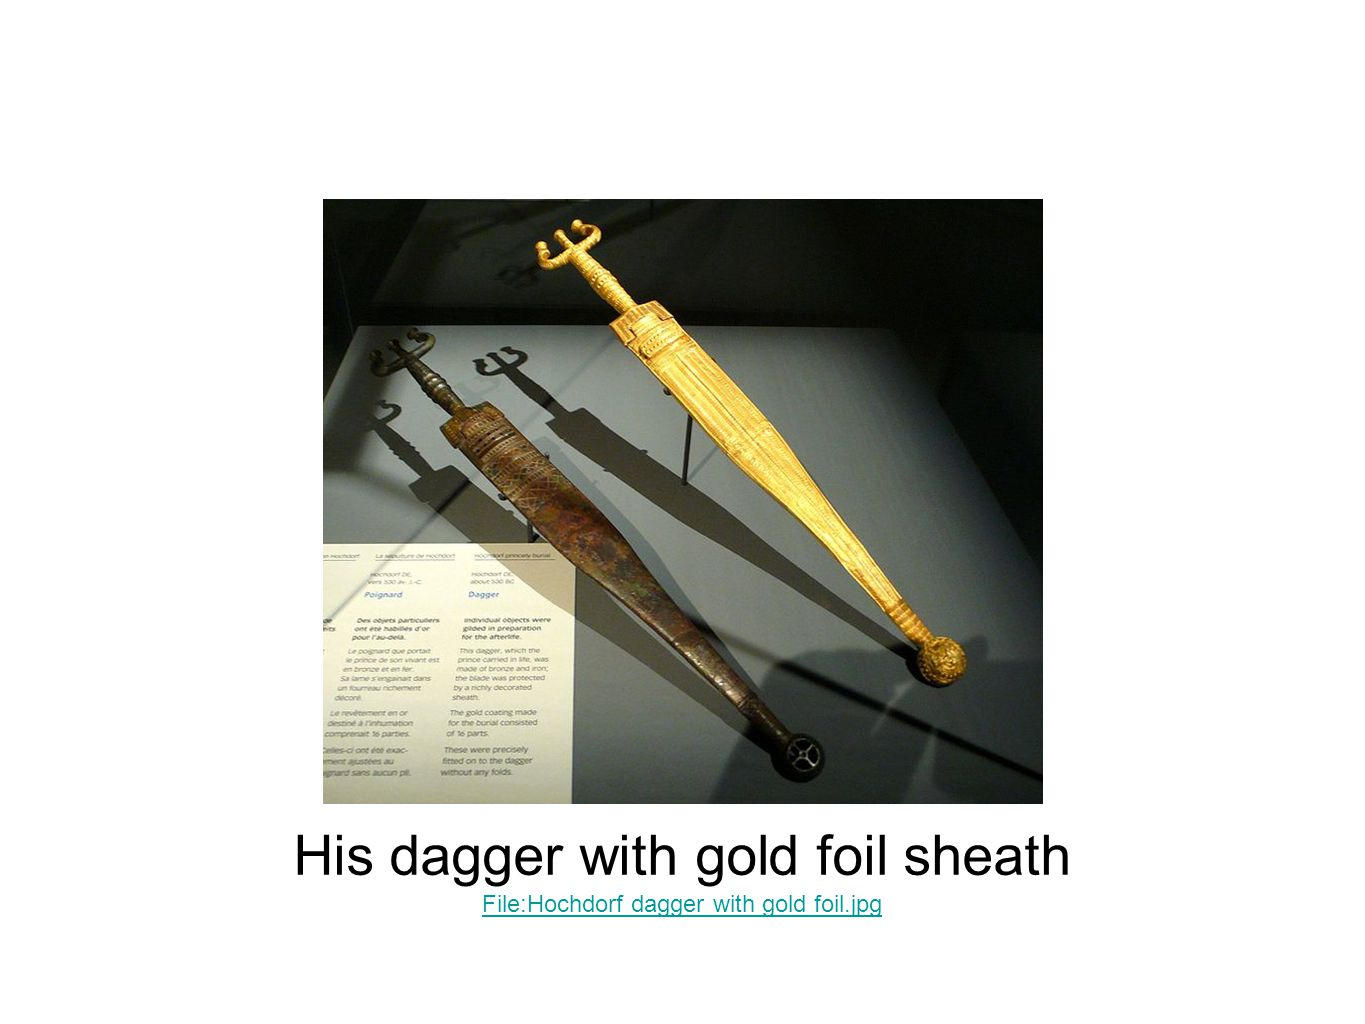 His dagger with gold foil sheath